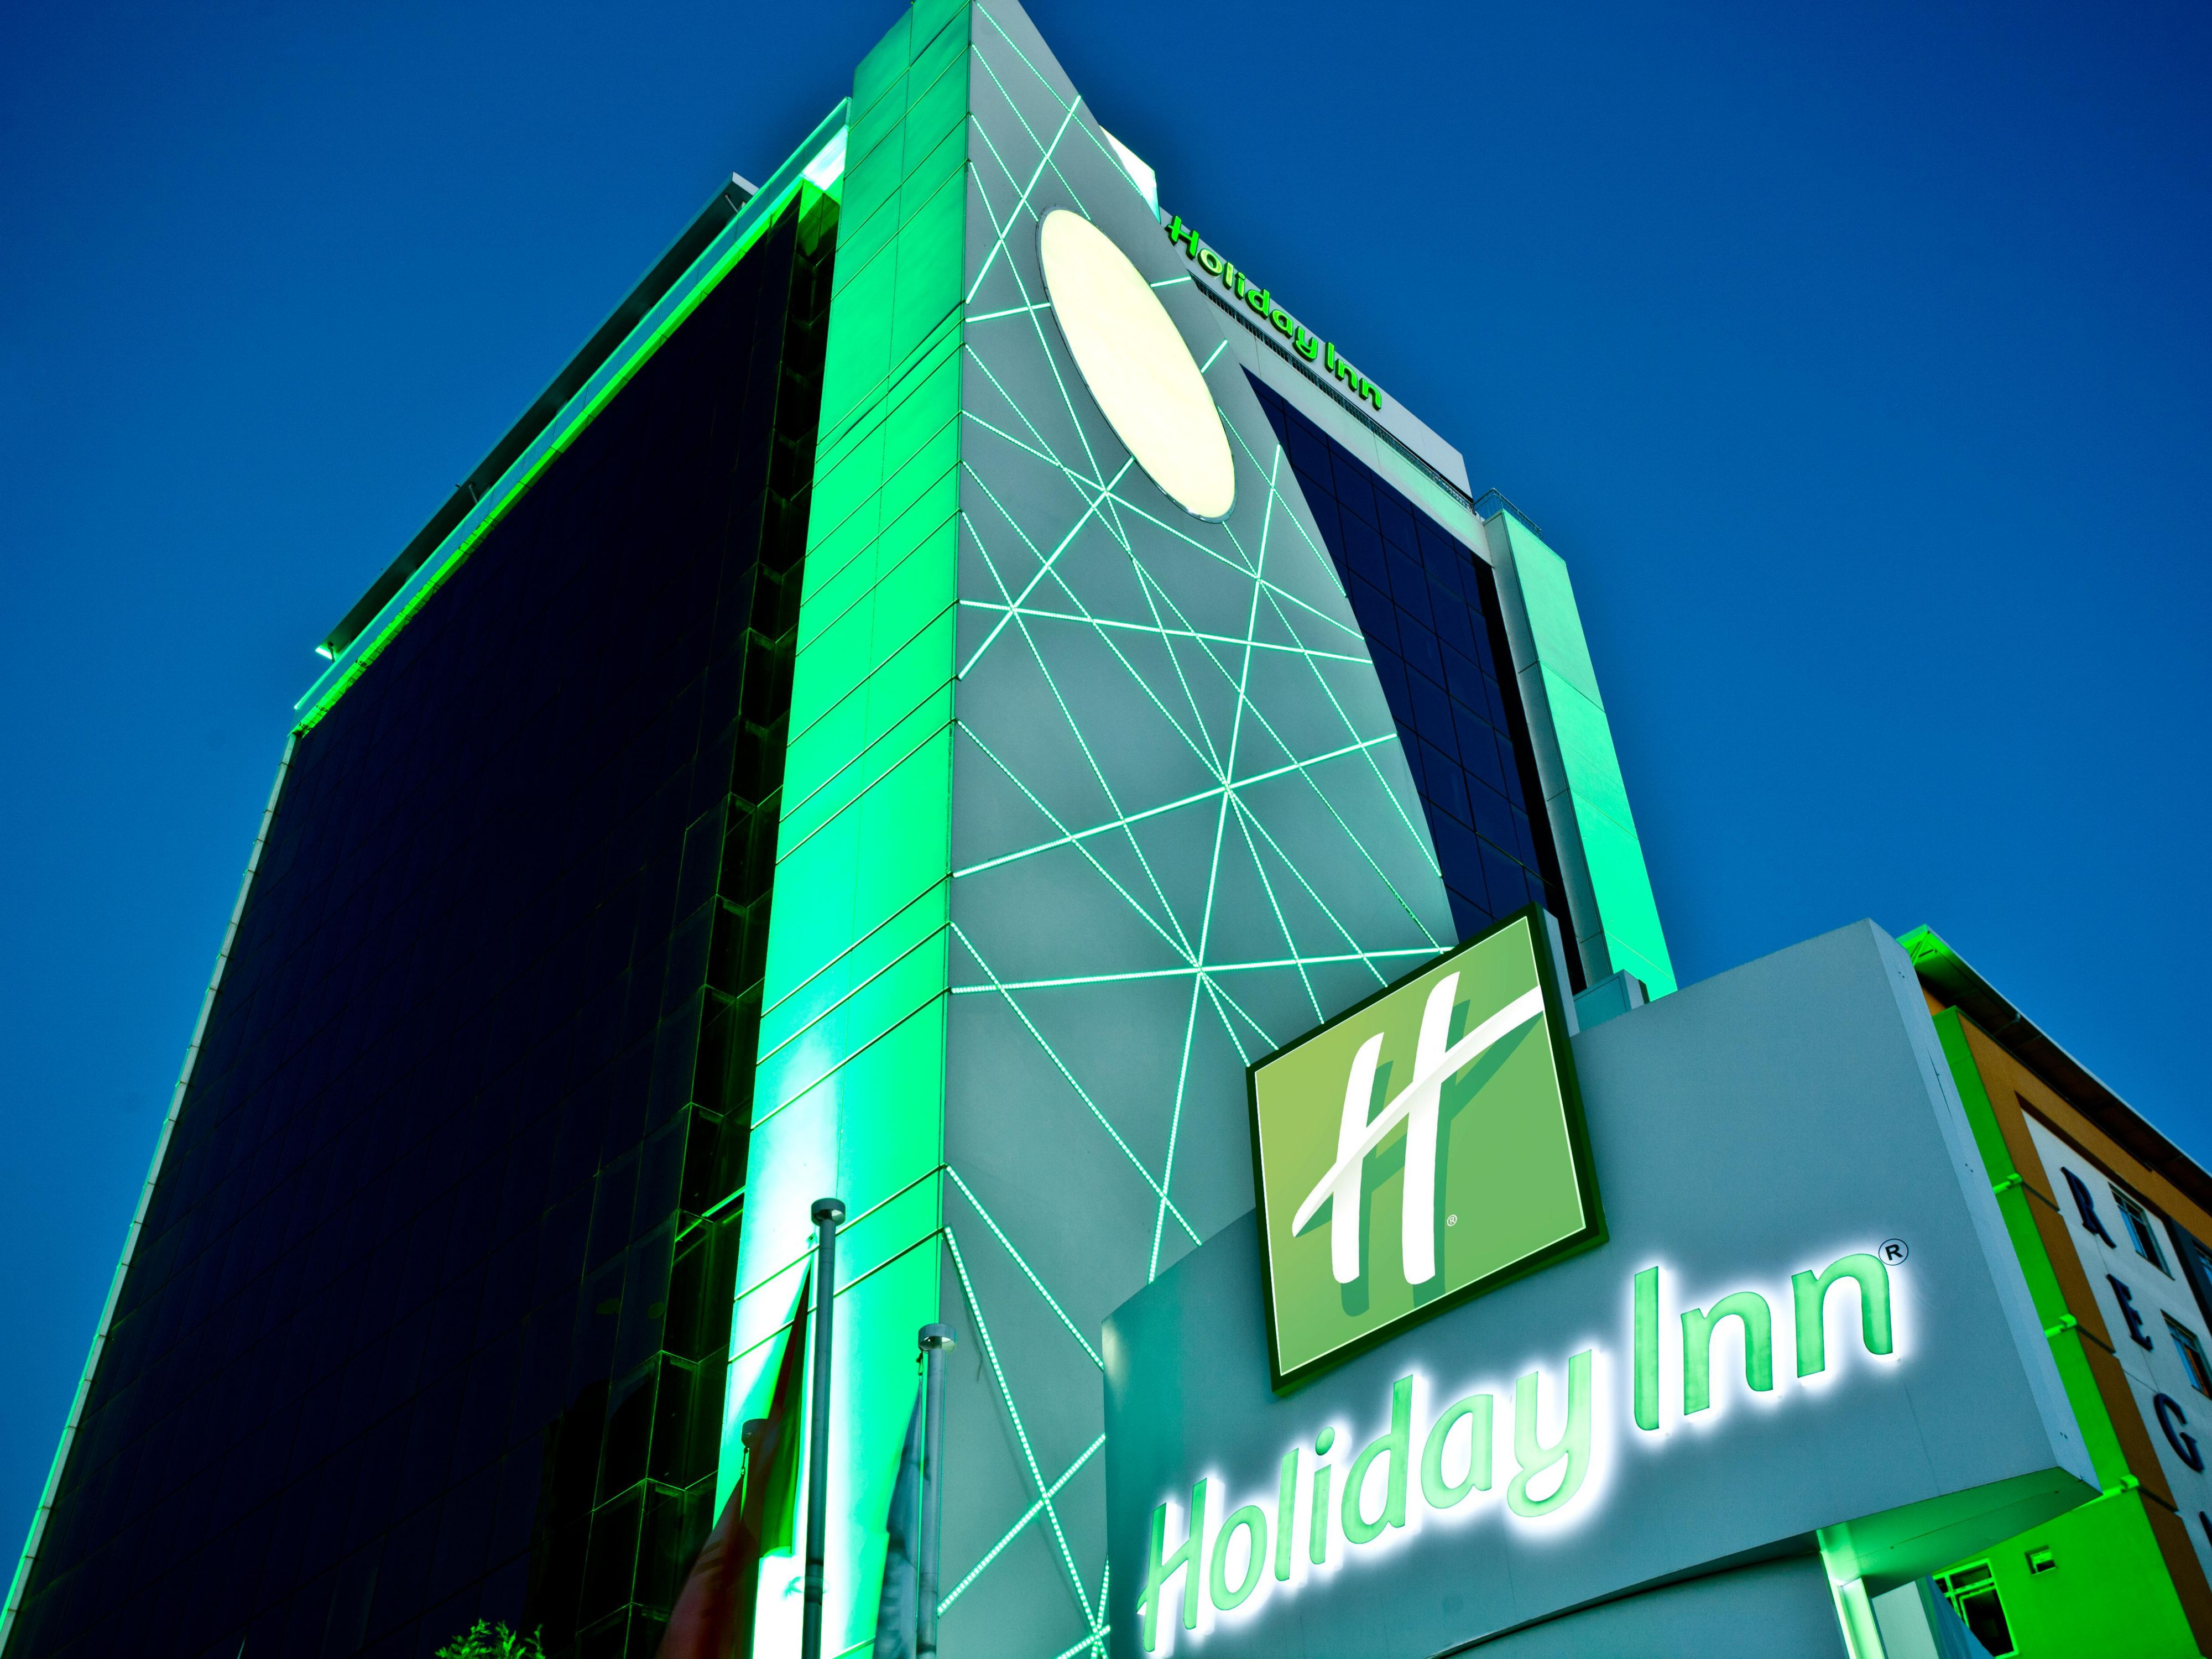 Welcome to Holiday Inn Gaziantep - Sehitkamil